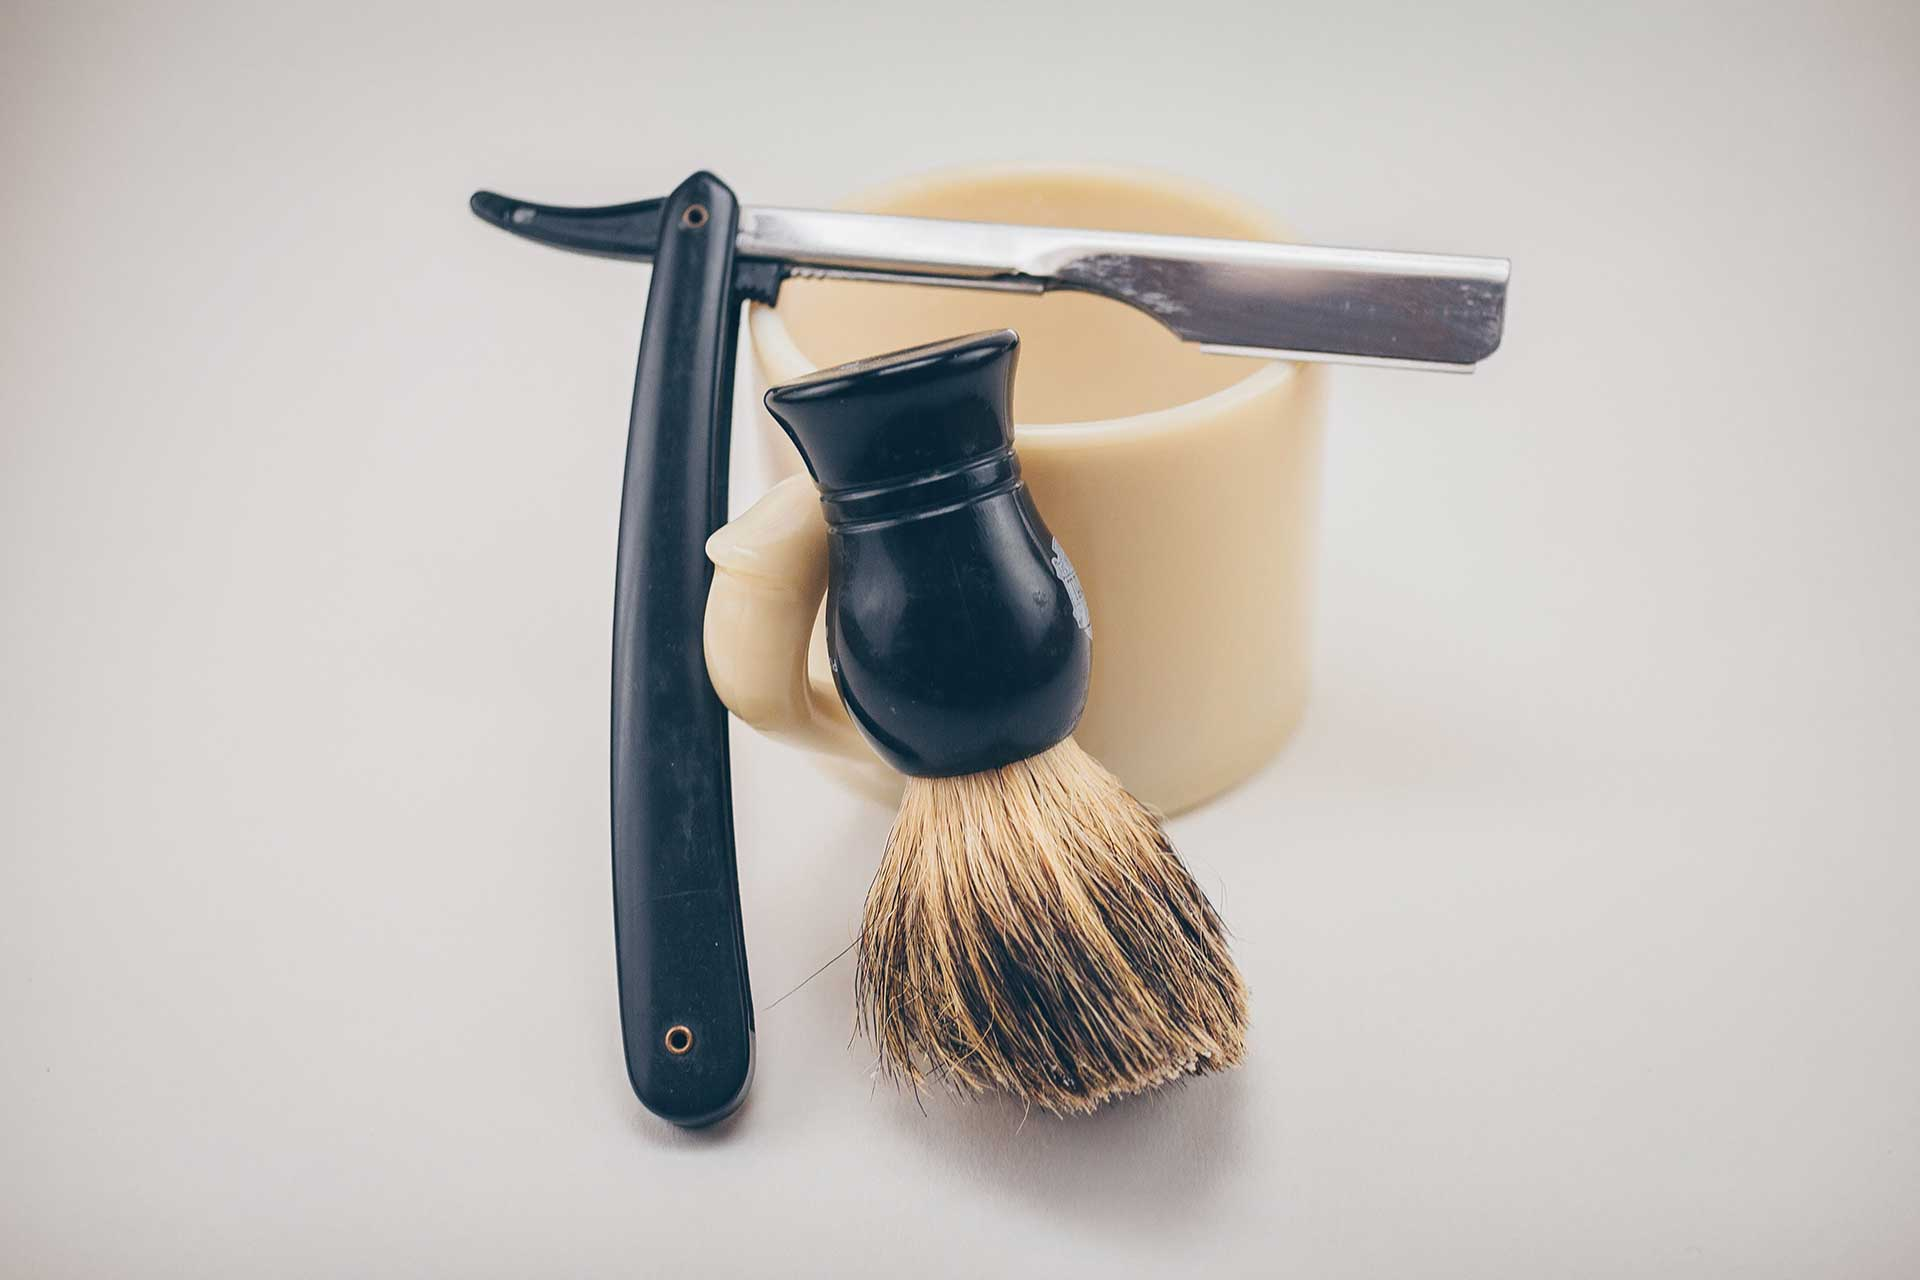 shaving cup, brush, and straight razor for barber